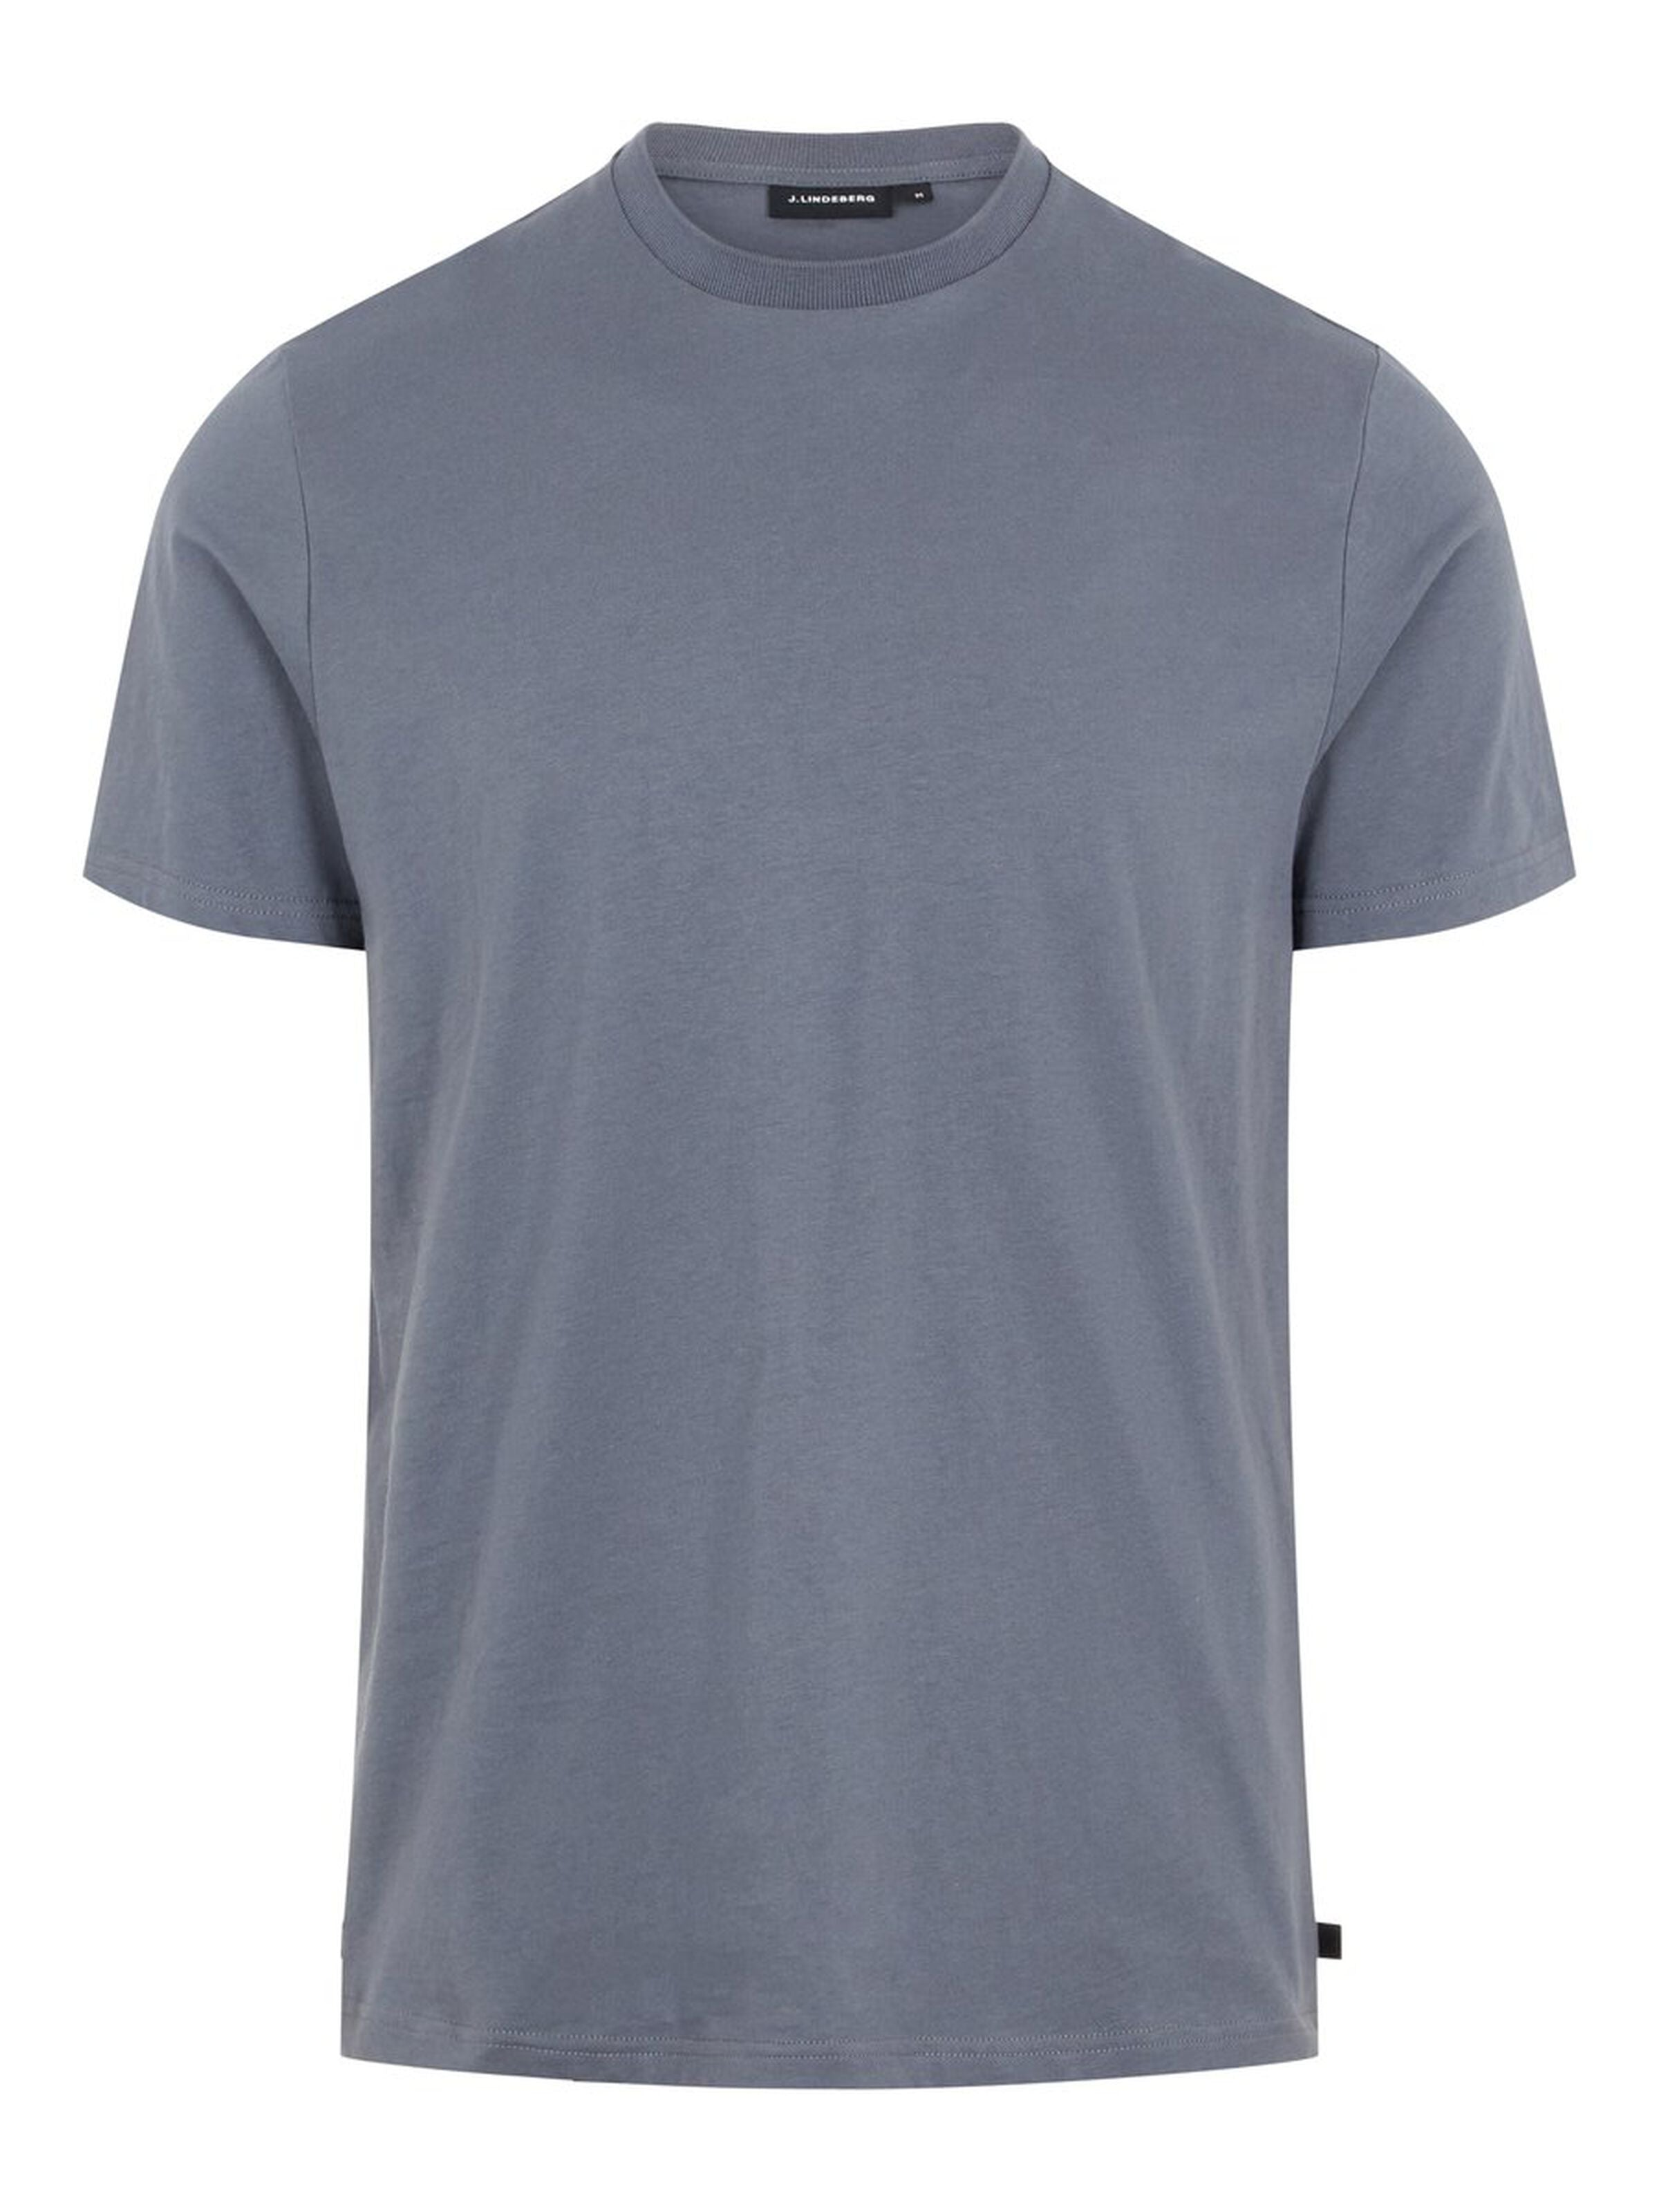 Silo Dark Grey Cotton T-Shirt